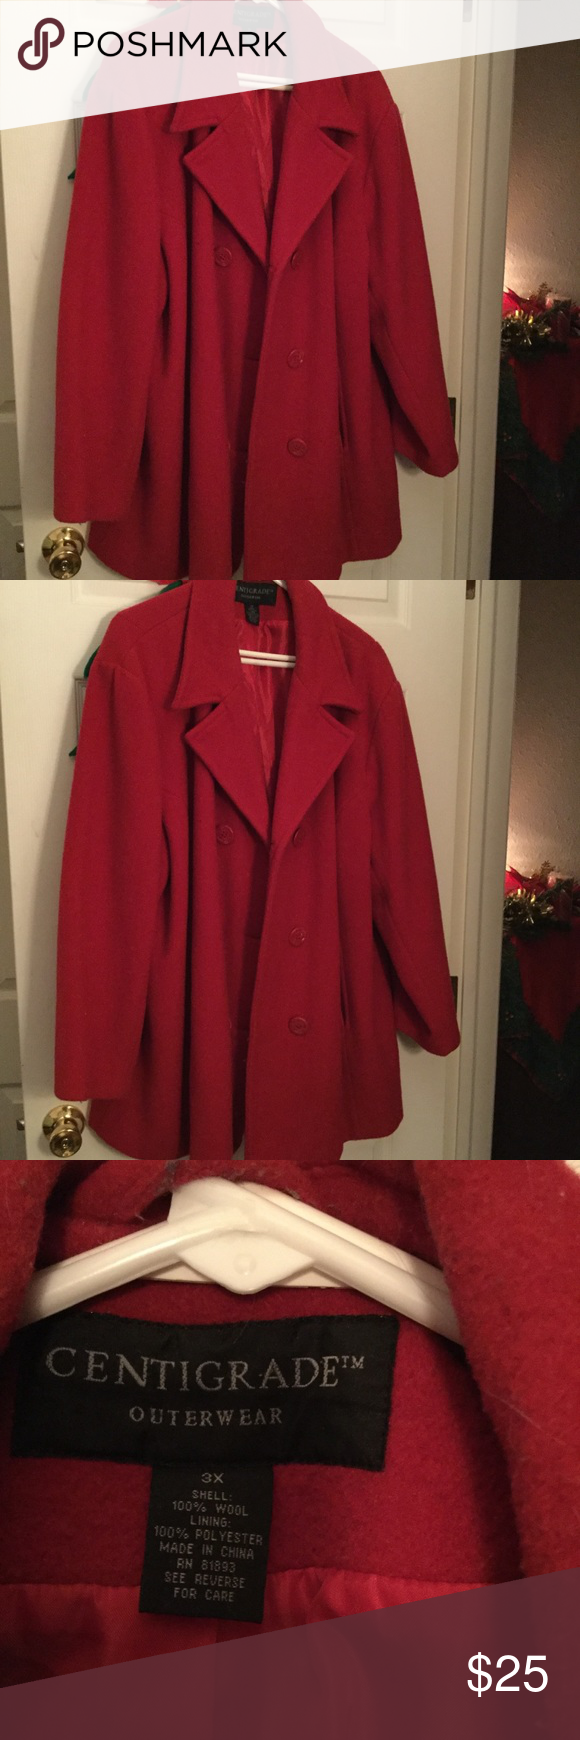 Centigrade Outerware Red Wool Coat Clothes Design Outerwear Jackets [ 1740 x 580 Pixel ]